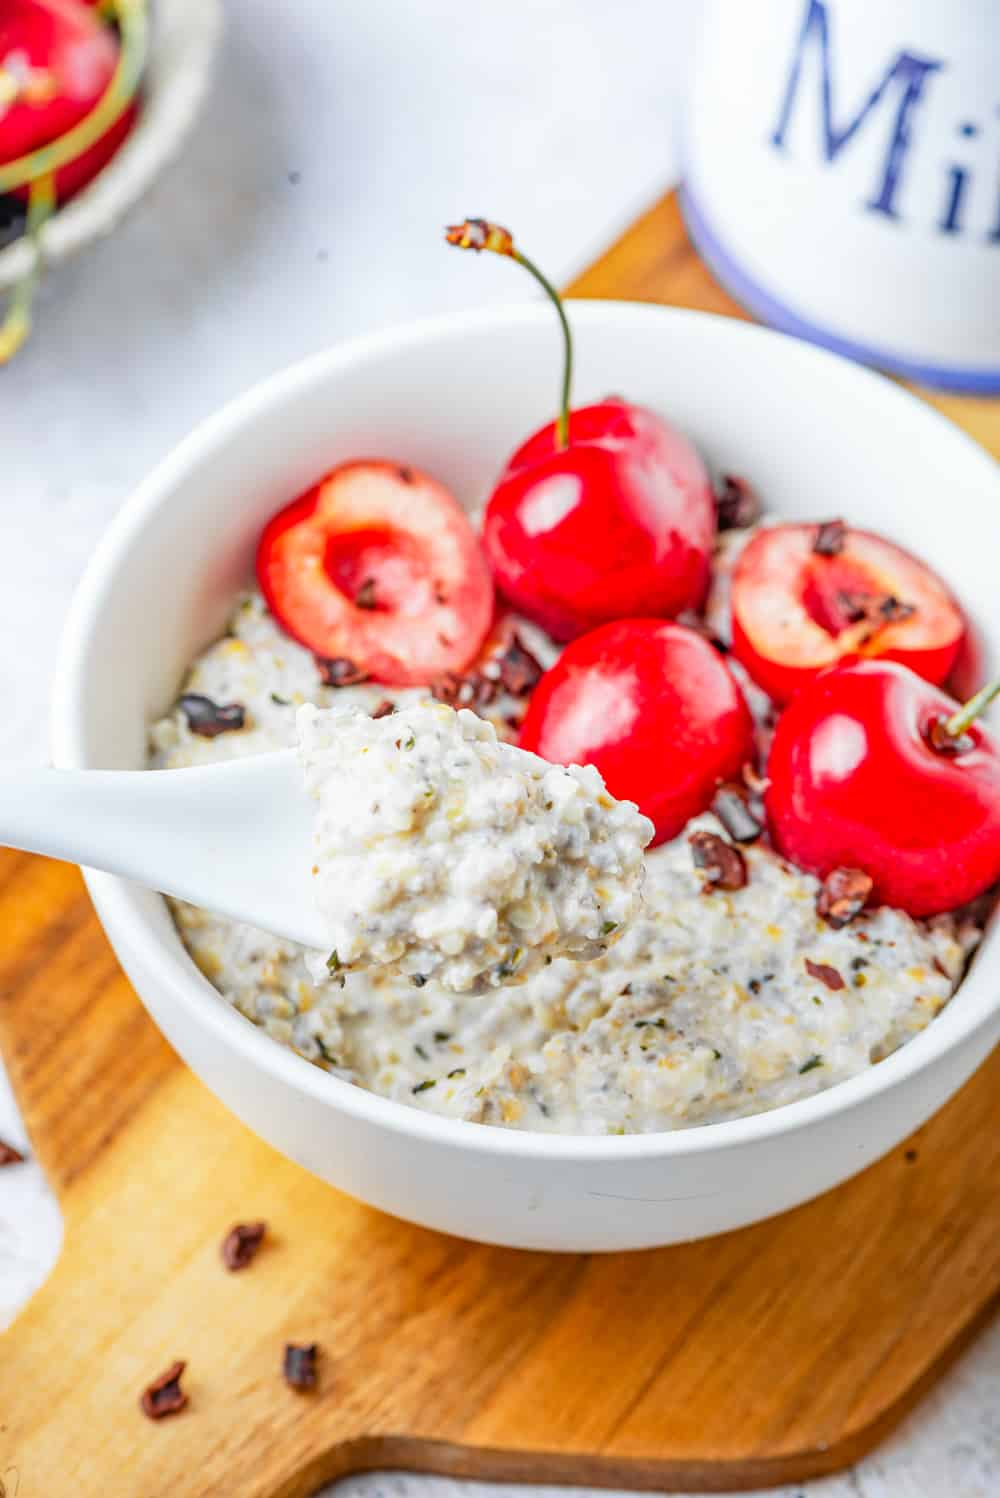 Oatmeal in a bowl with a white spoon taking some out.